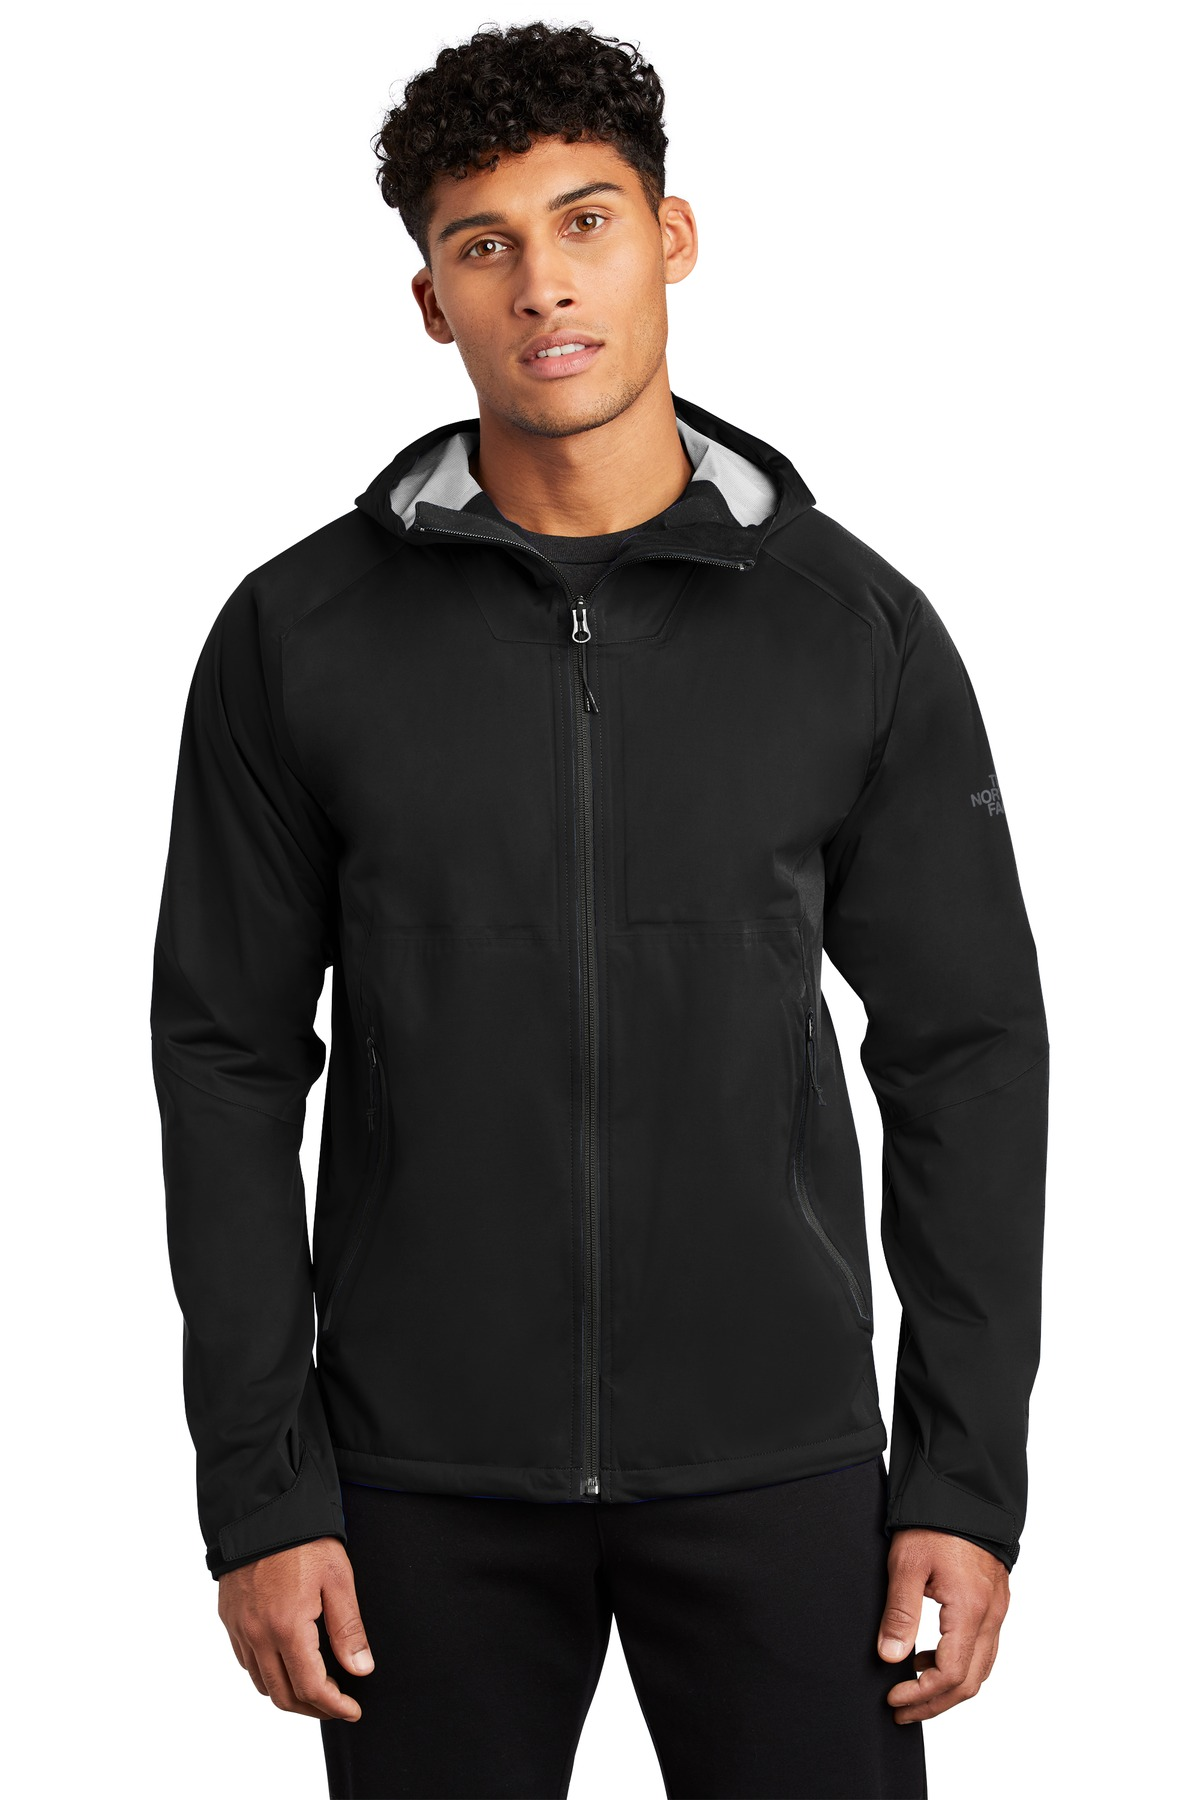 The North Face  ®  All-Weather DryVent  ™  Stretch Jacket NF0A47FG - TNF Black